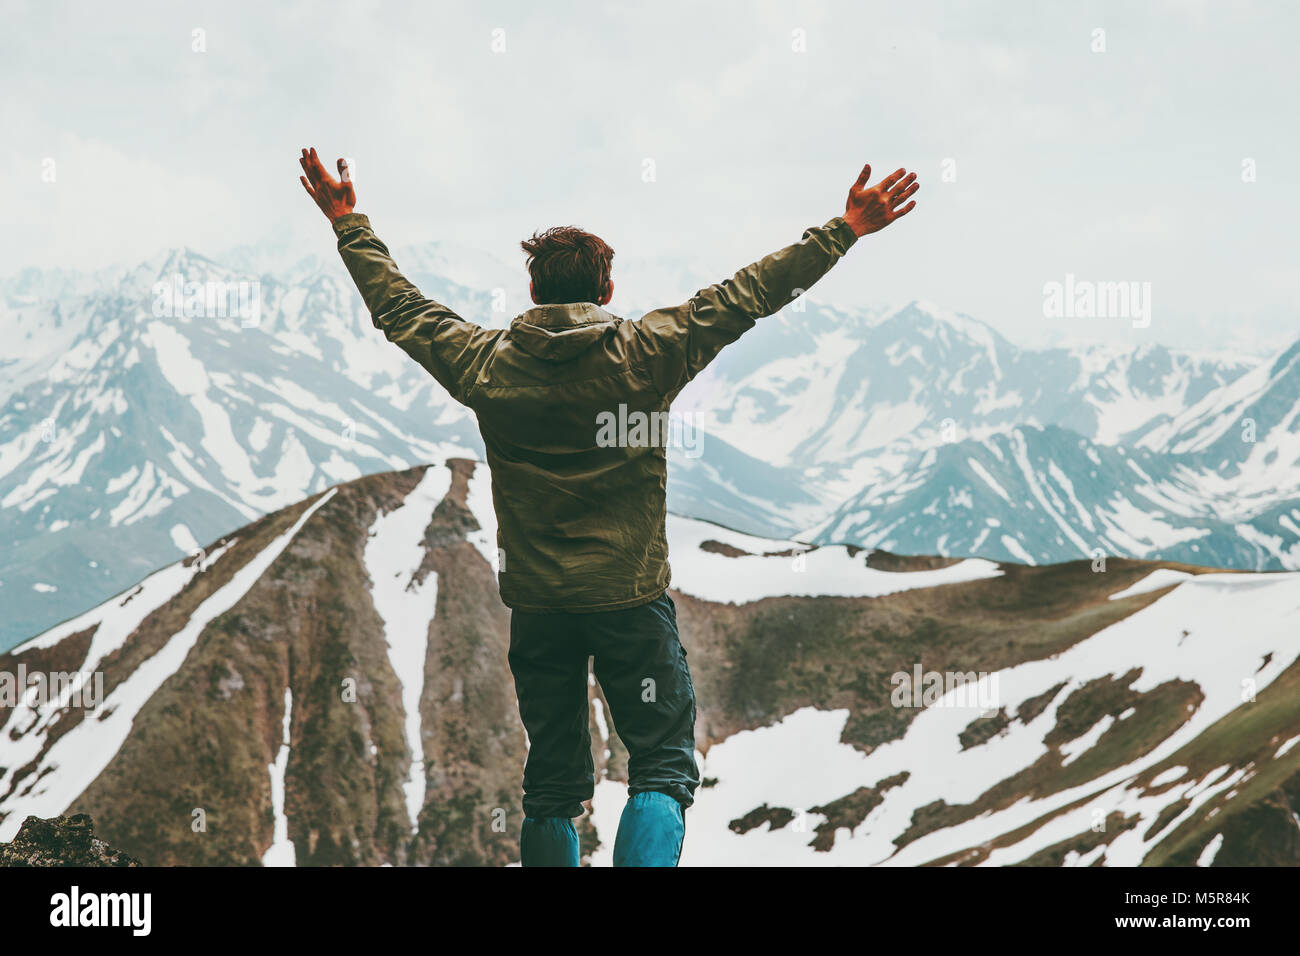 Happy adventurer Man raised hands on summit Travel Lifestyle concept traveler enjoying mountains landscape outdoor - Stock Image